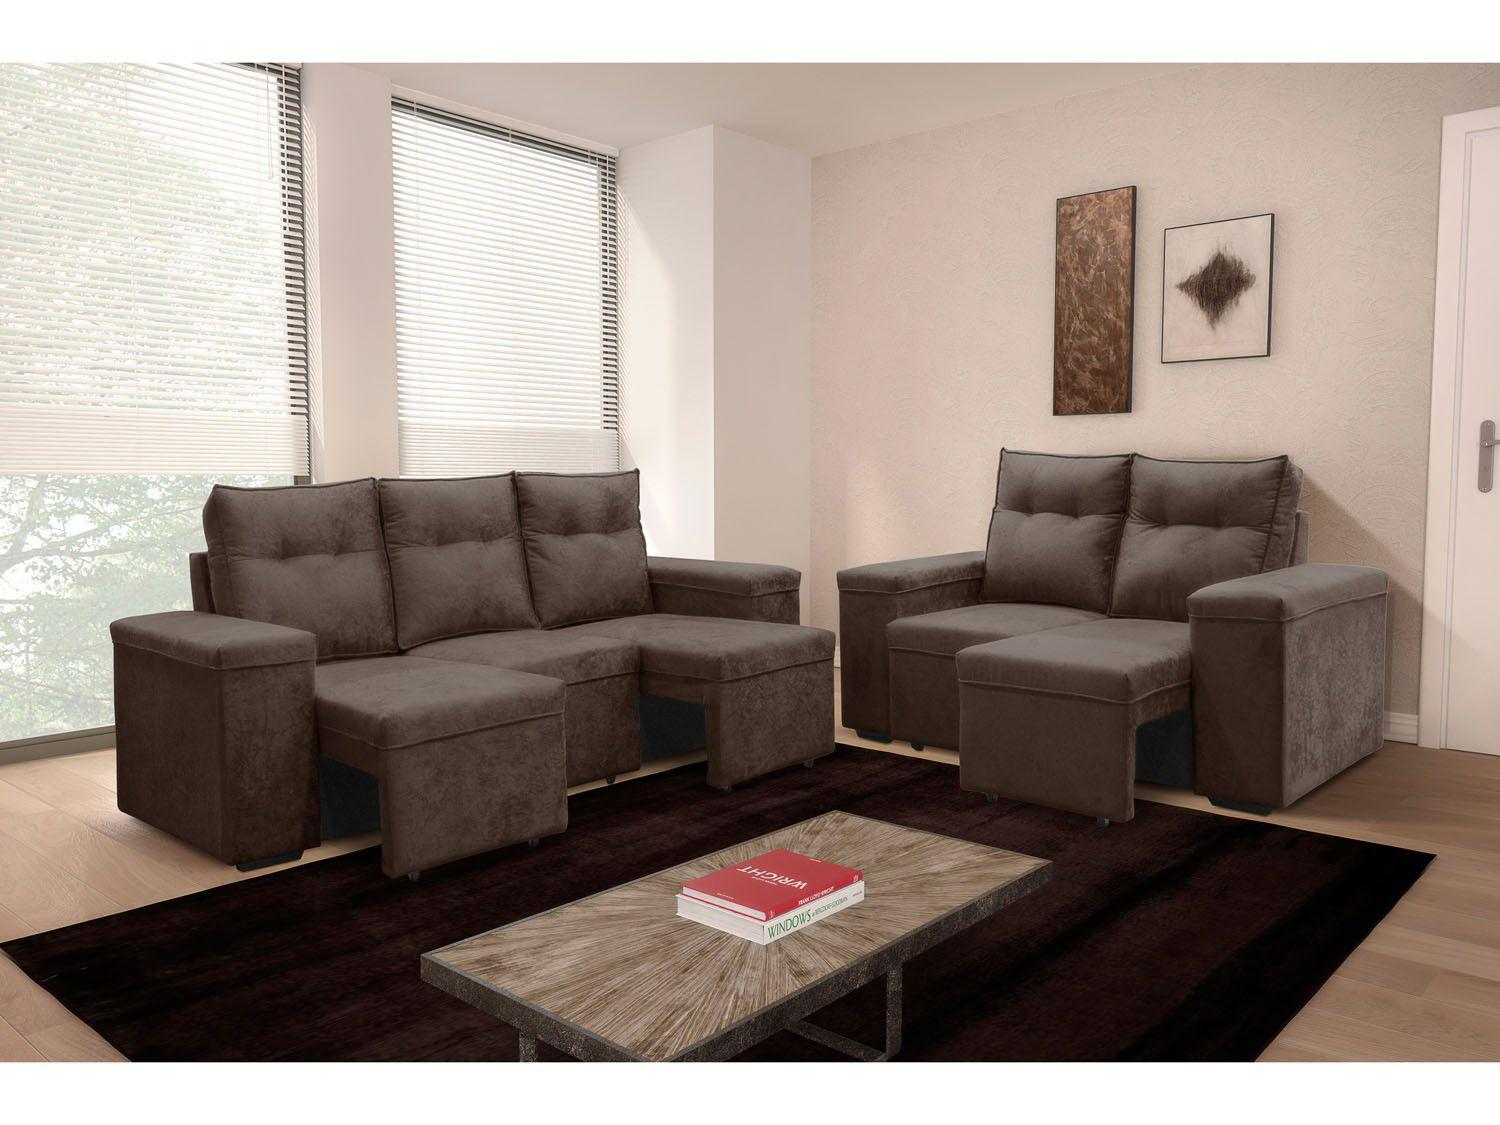 Magazine luiza sofas retratil 2 e 3 lugares www for Sofa 03 lugares retratil e reclinavel